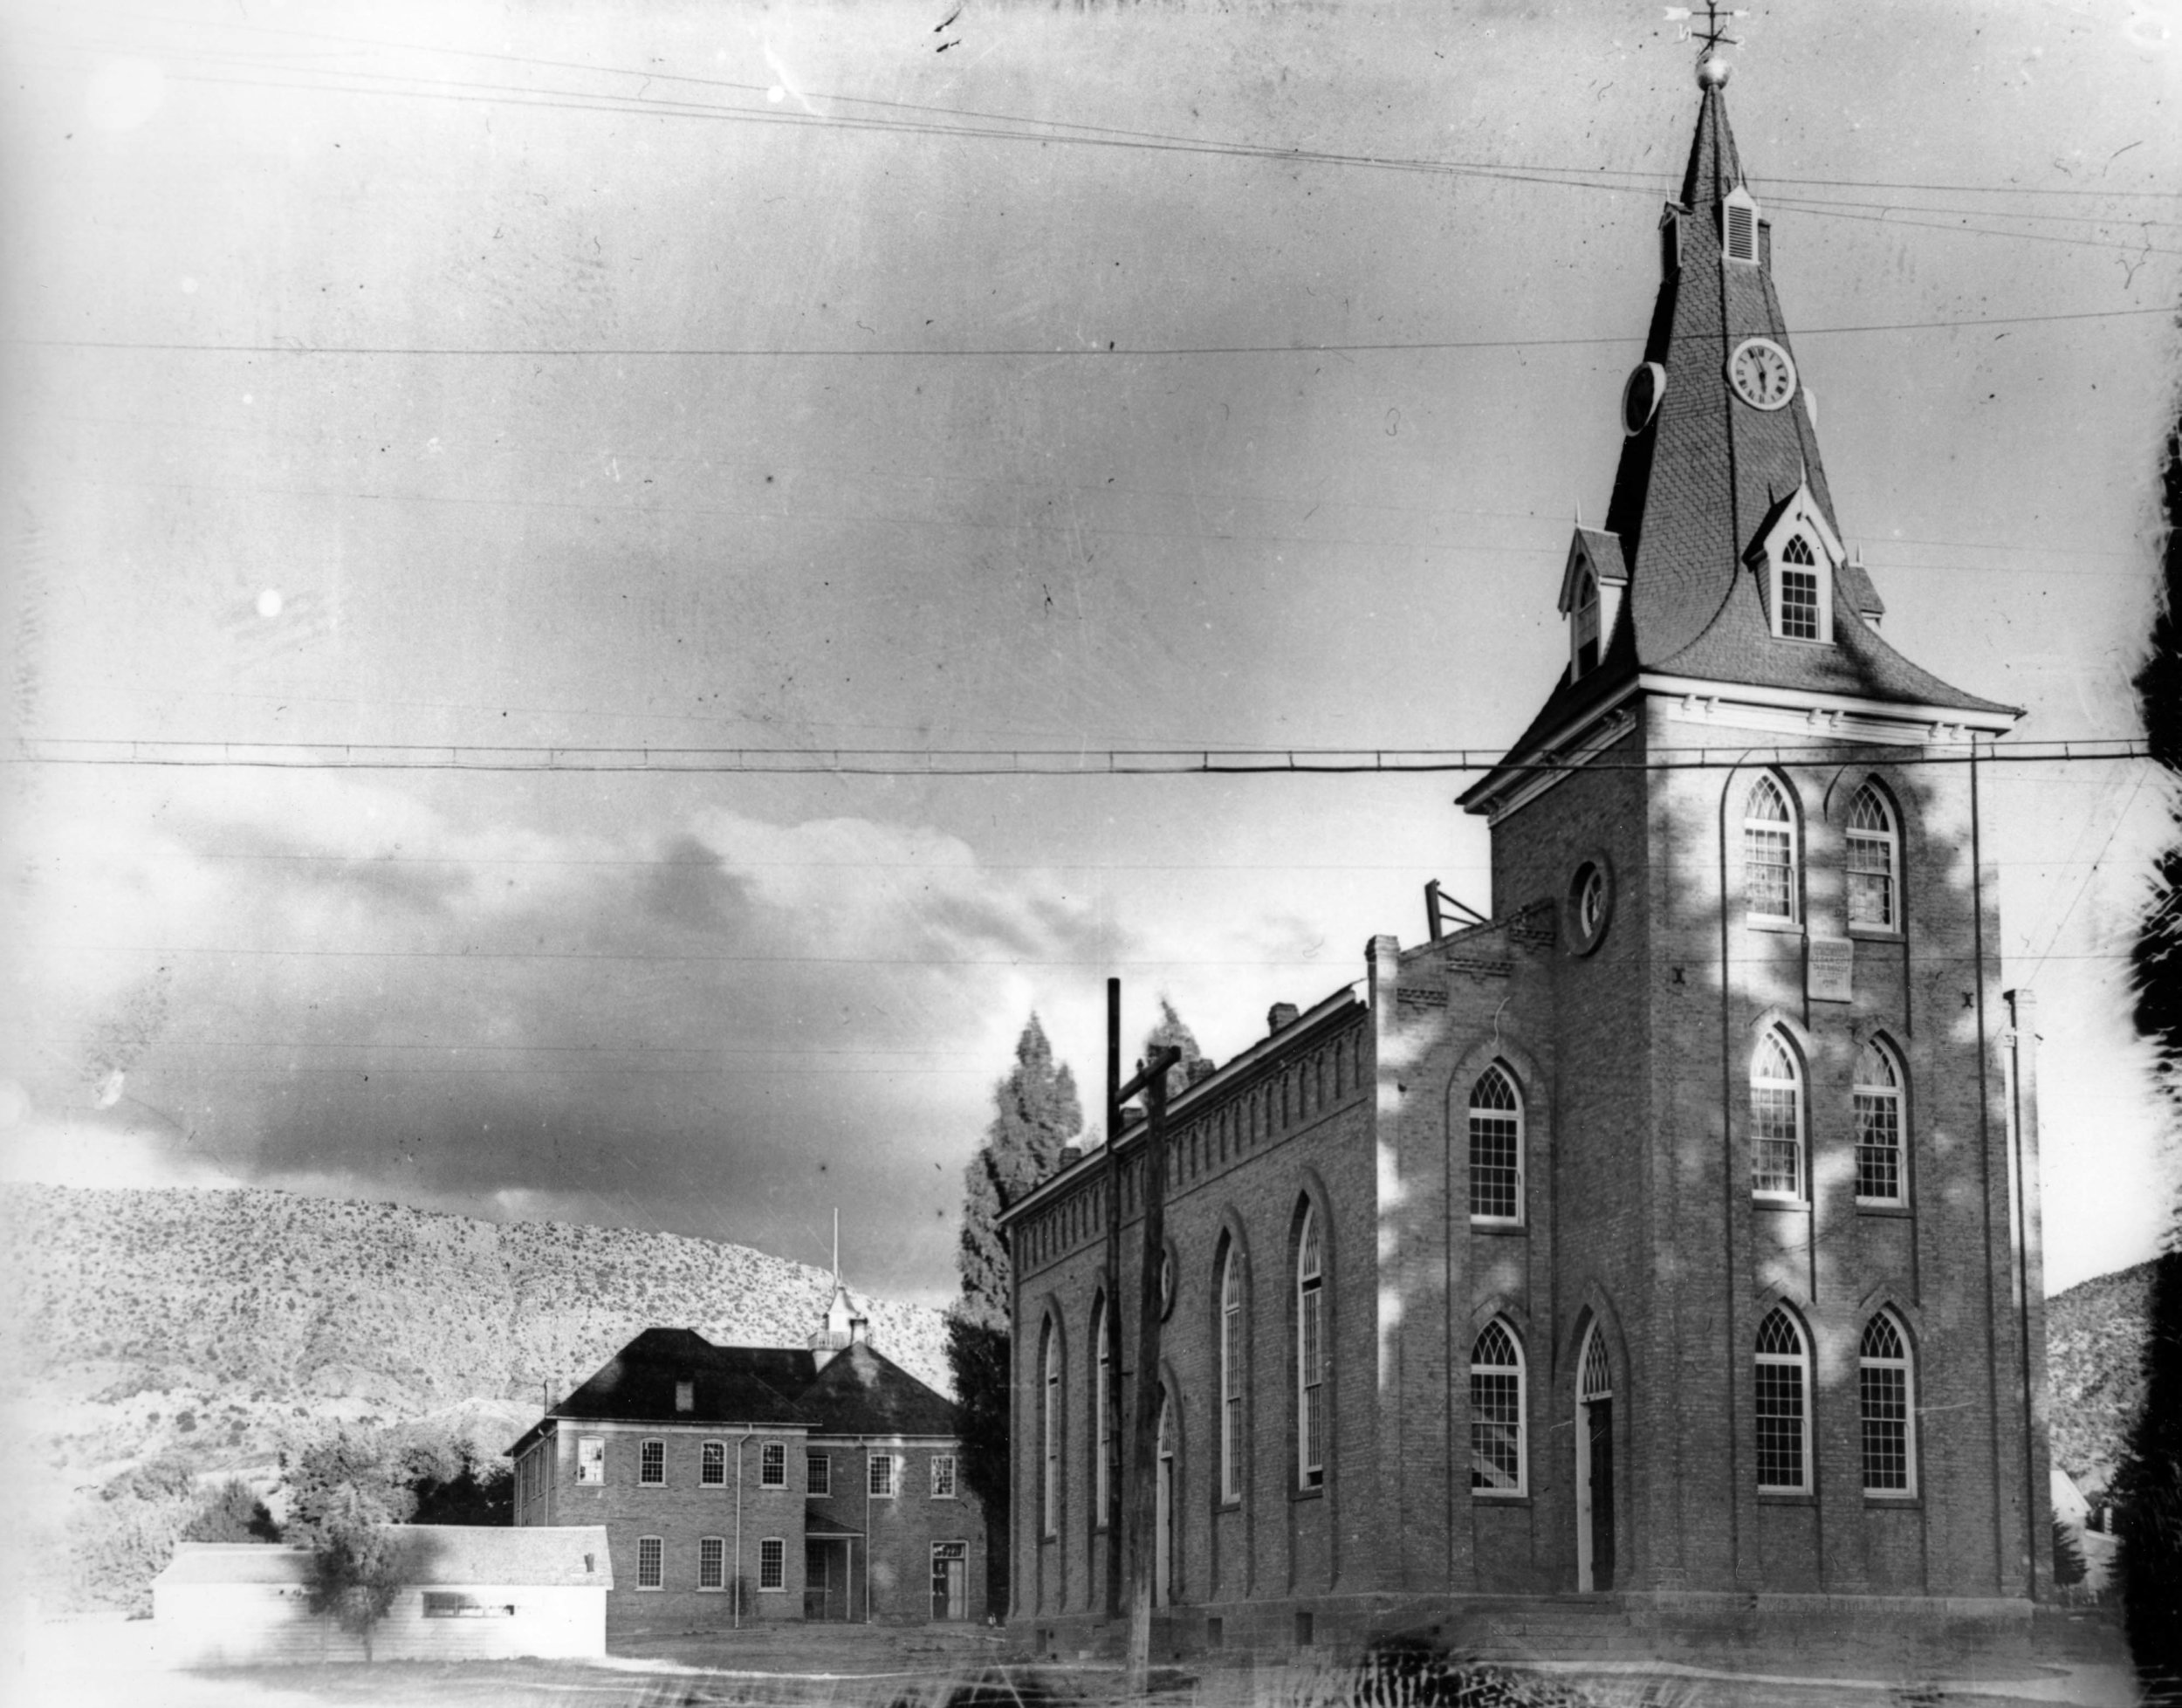 The Tabernacle with the District School in the background.